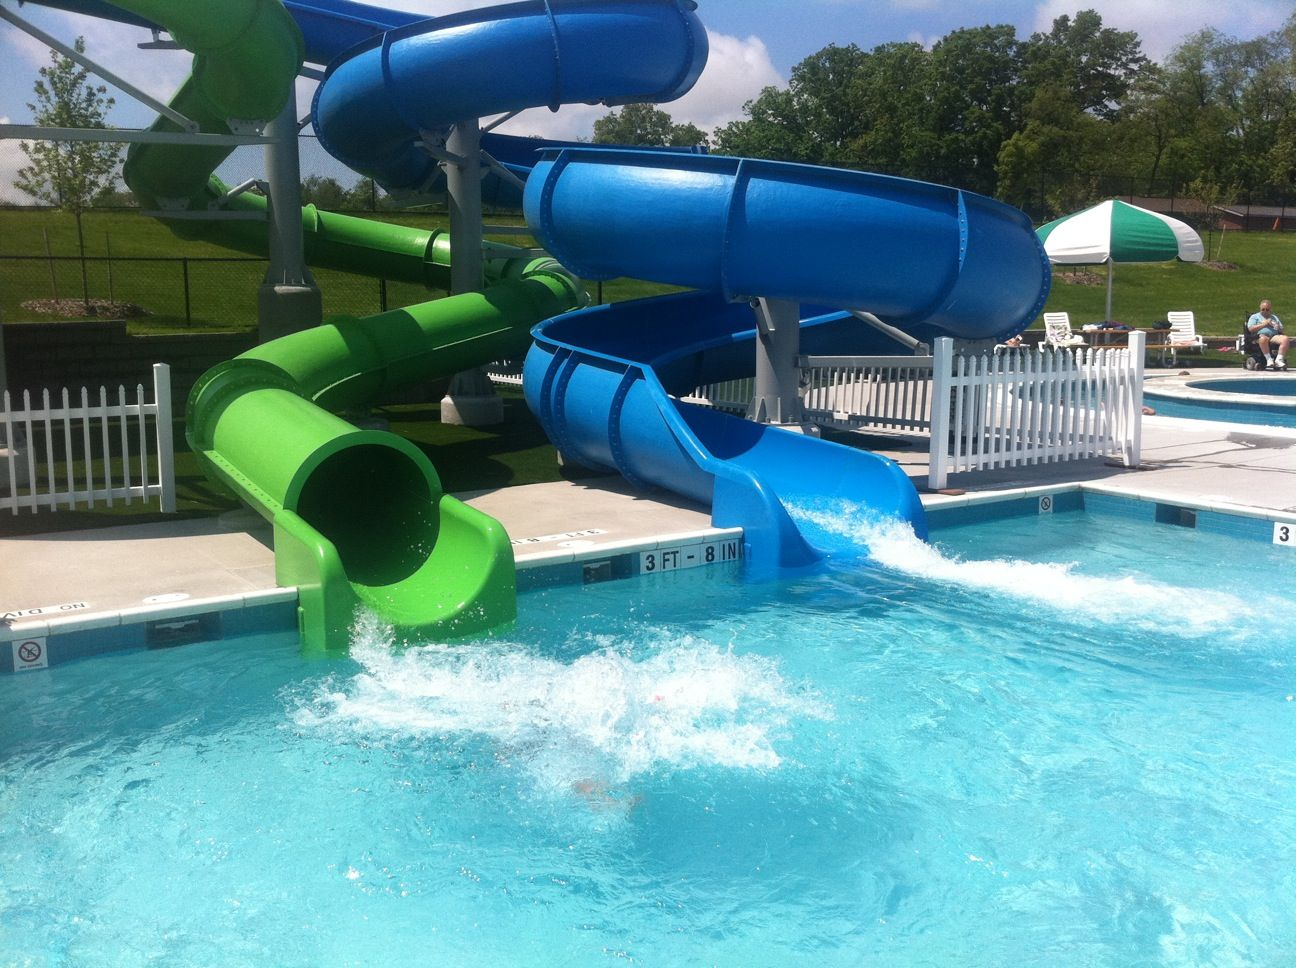 Swimming Pool Slides | In State College? Ride The Slides!